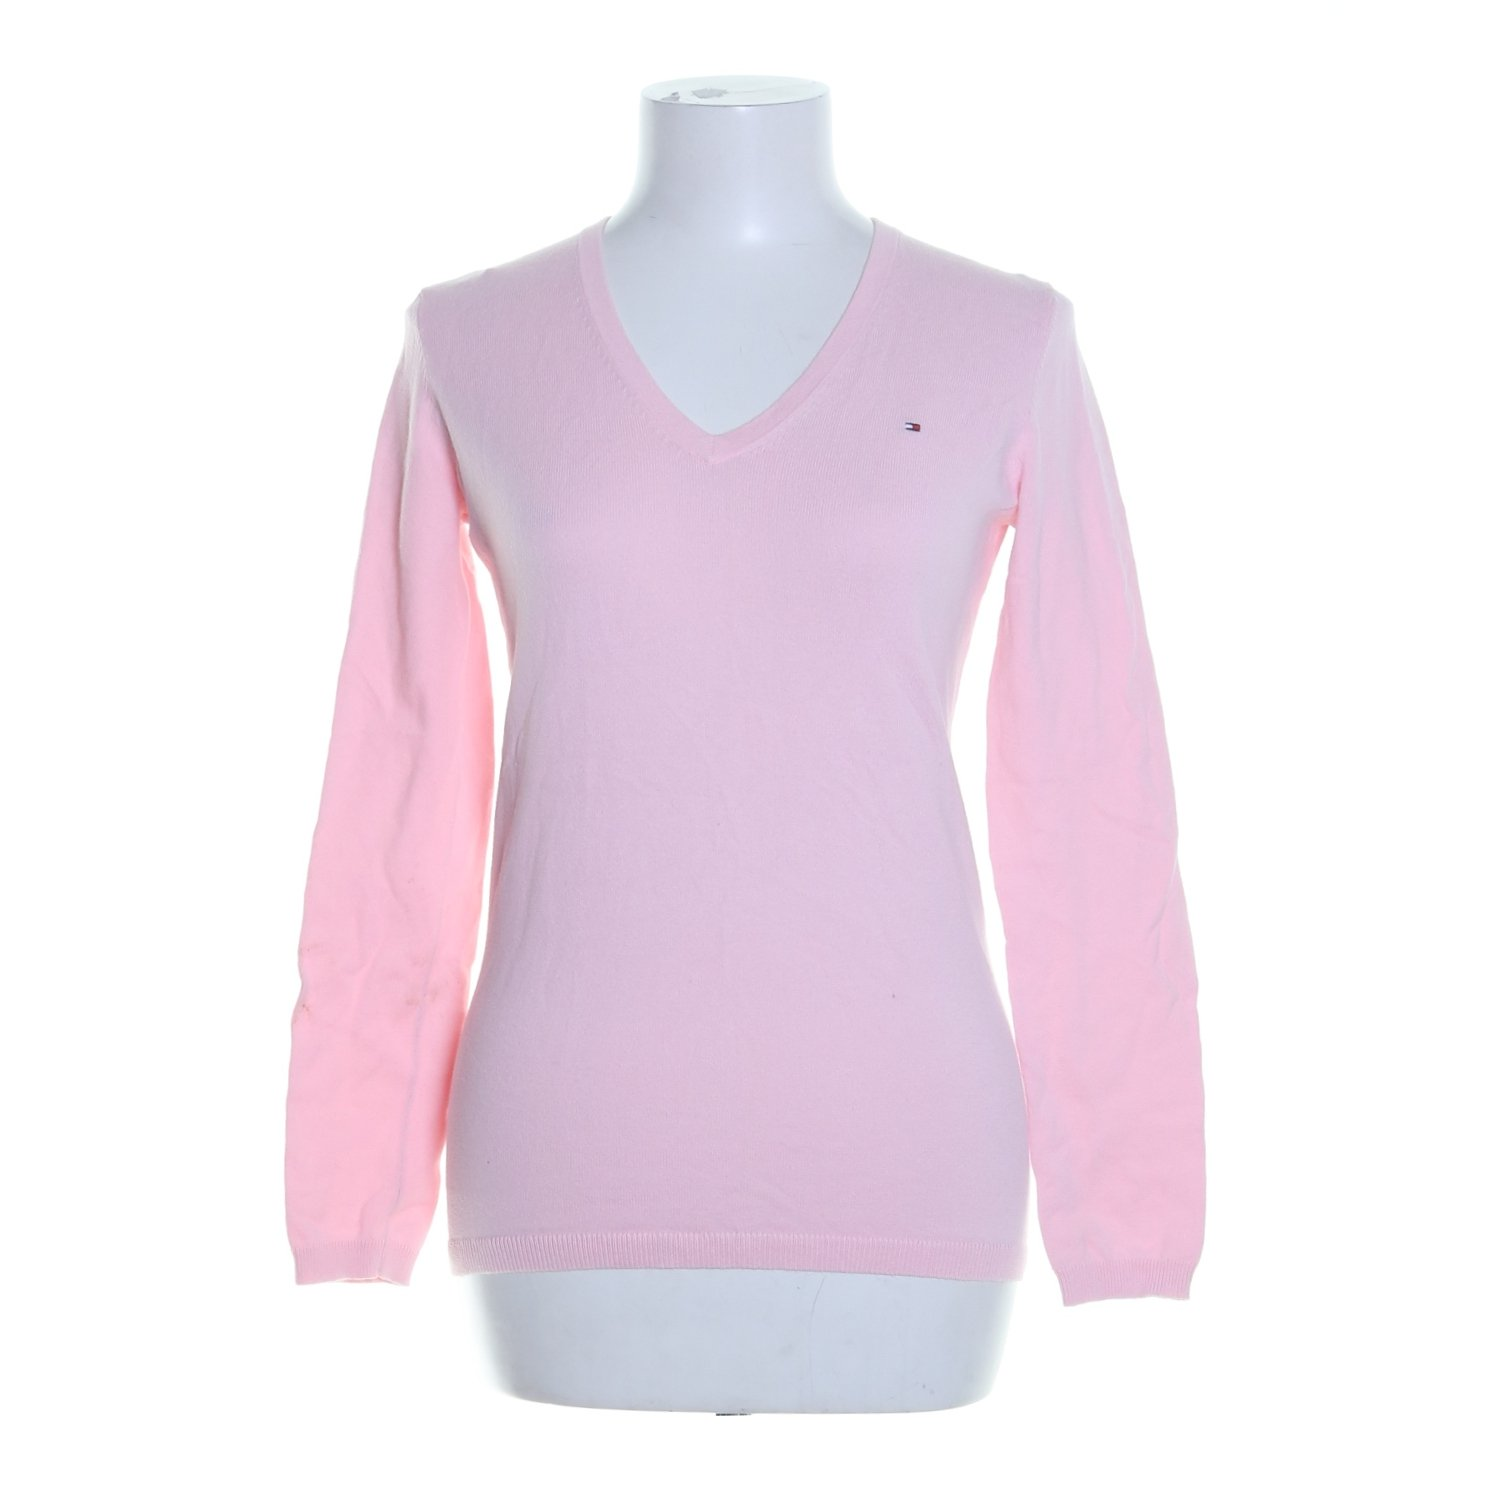 Tommy Hilfiger, Pullover, Strl: XS, Rosa, Bomull